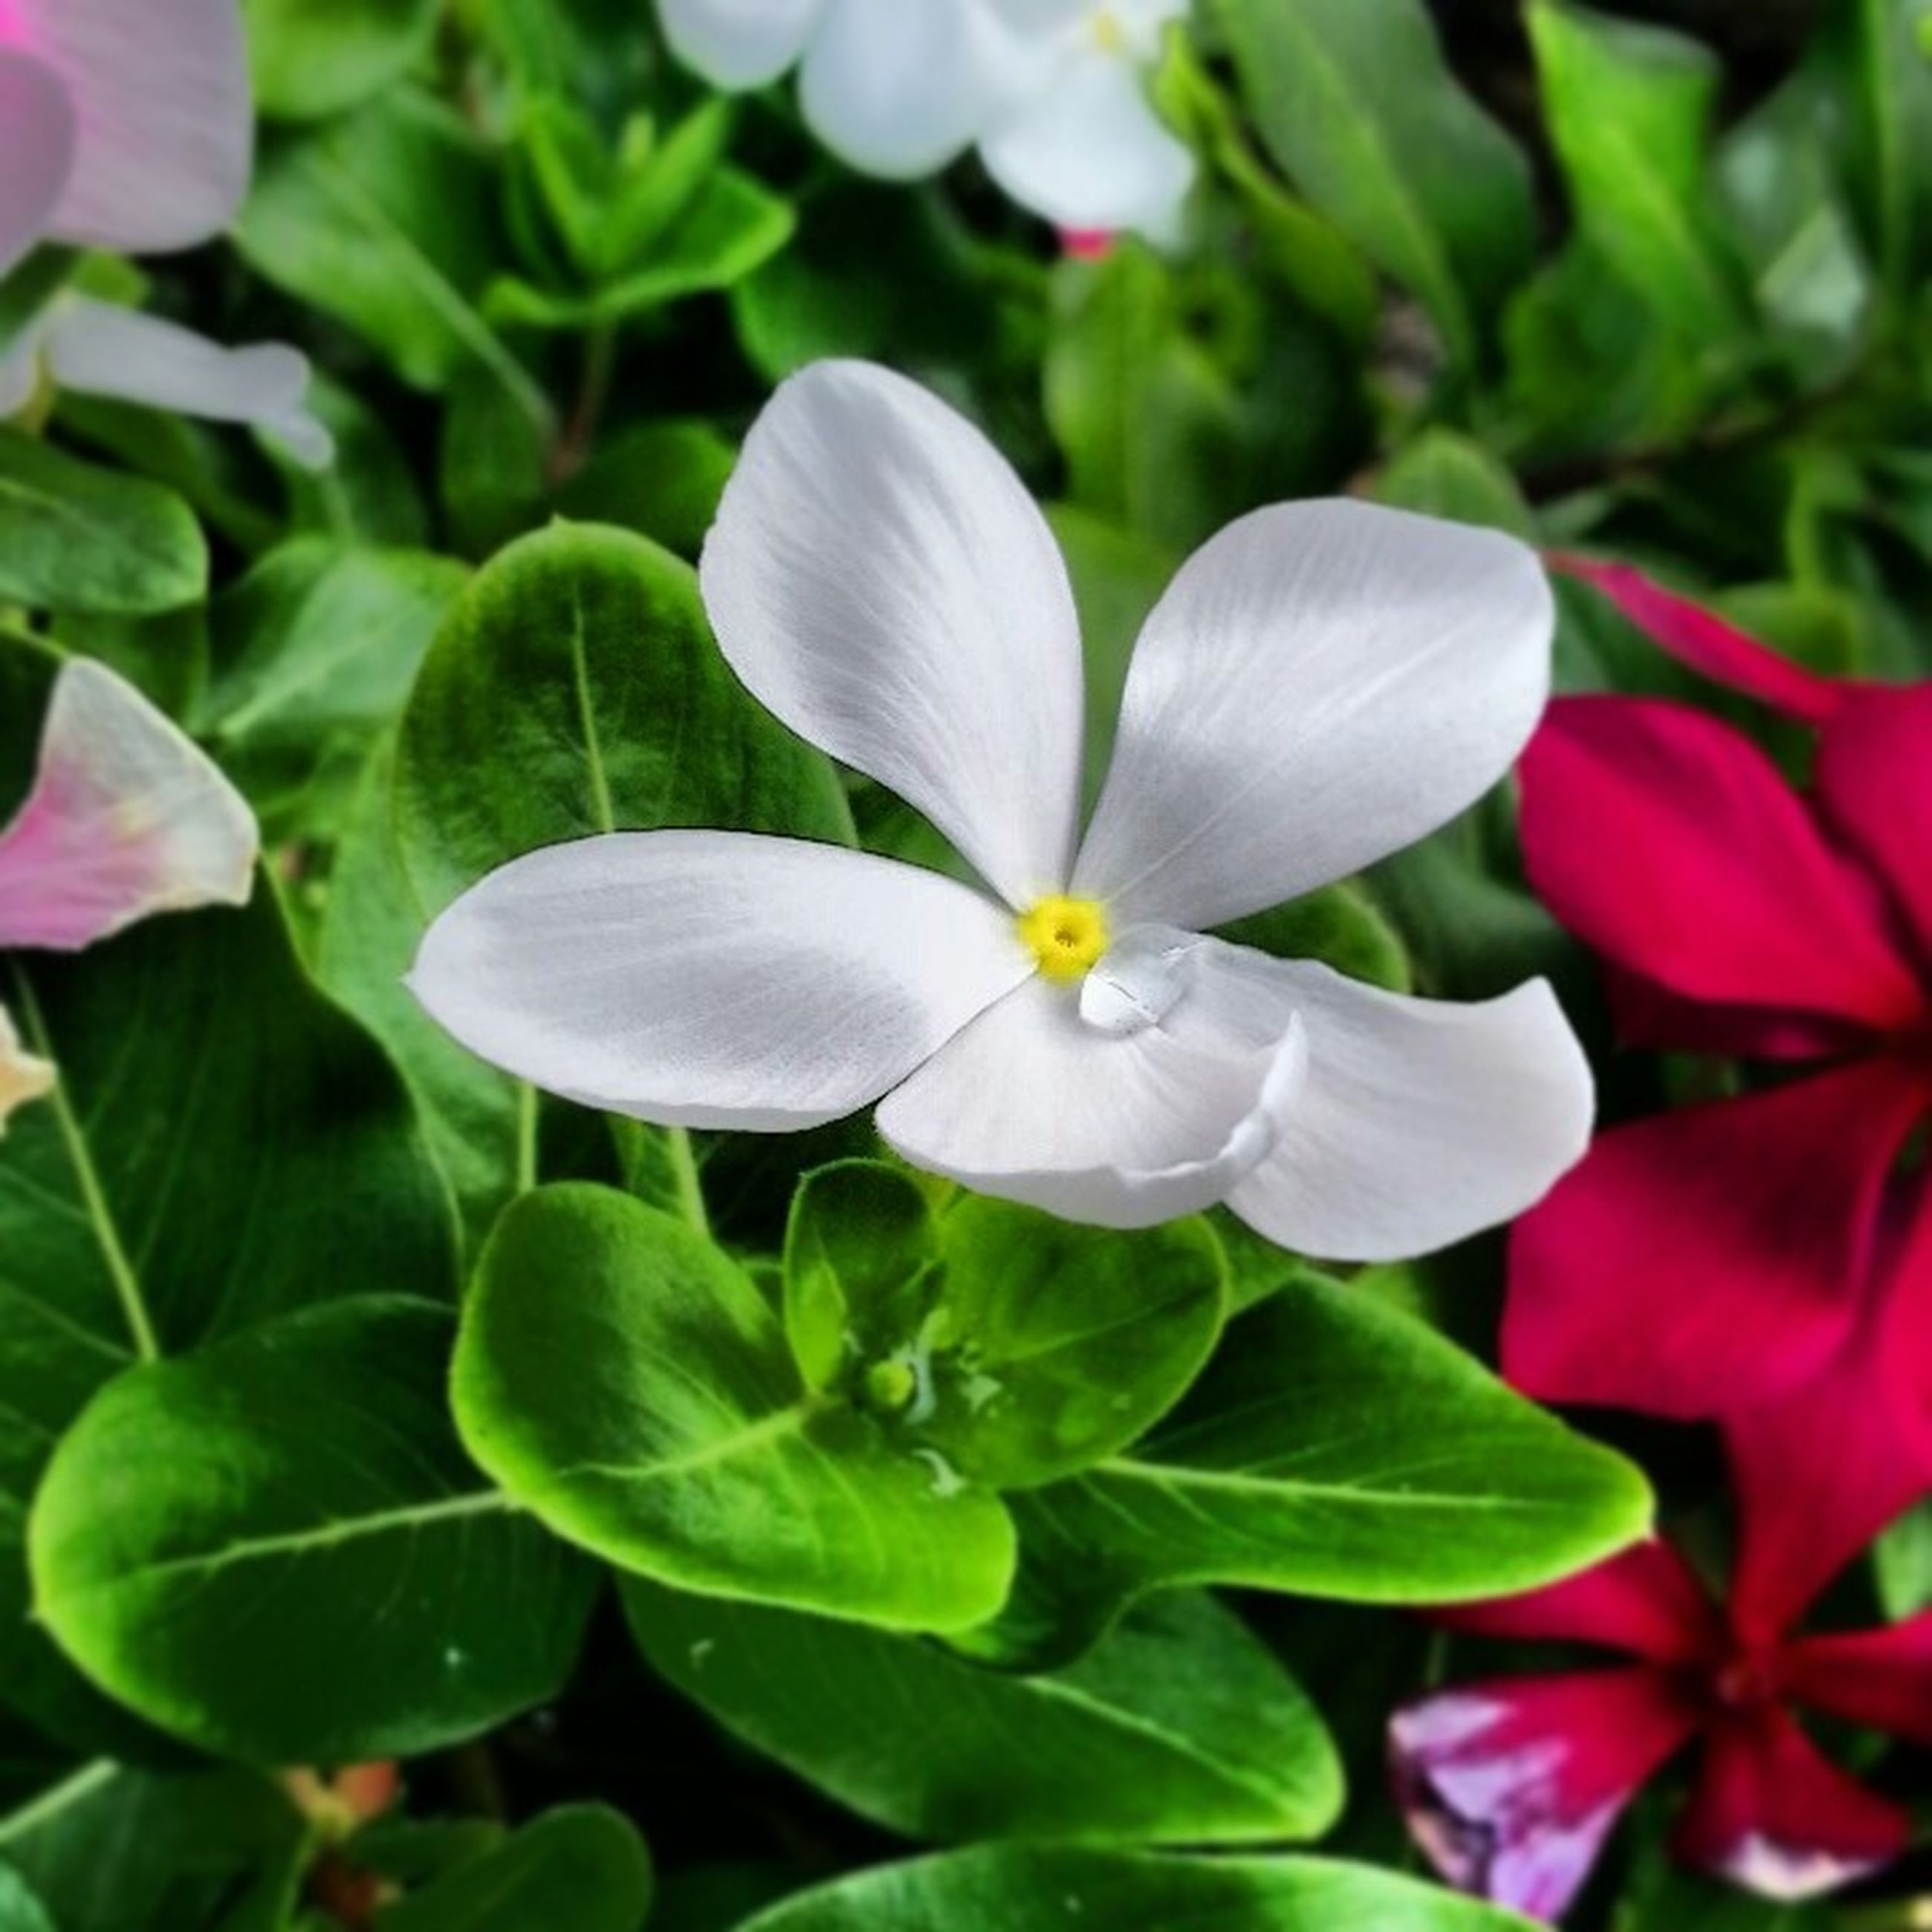 flower, petal, freshness, growth, fragility, flower head, leaf, beauty in nature, blooming, nature, plant, close-up, white color, in bloom, green color, pink color, focus on foreground, high angle view, park - man made space, blossom